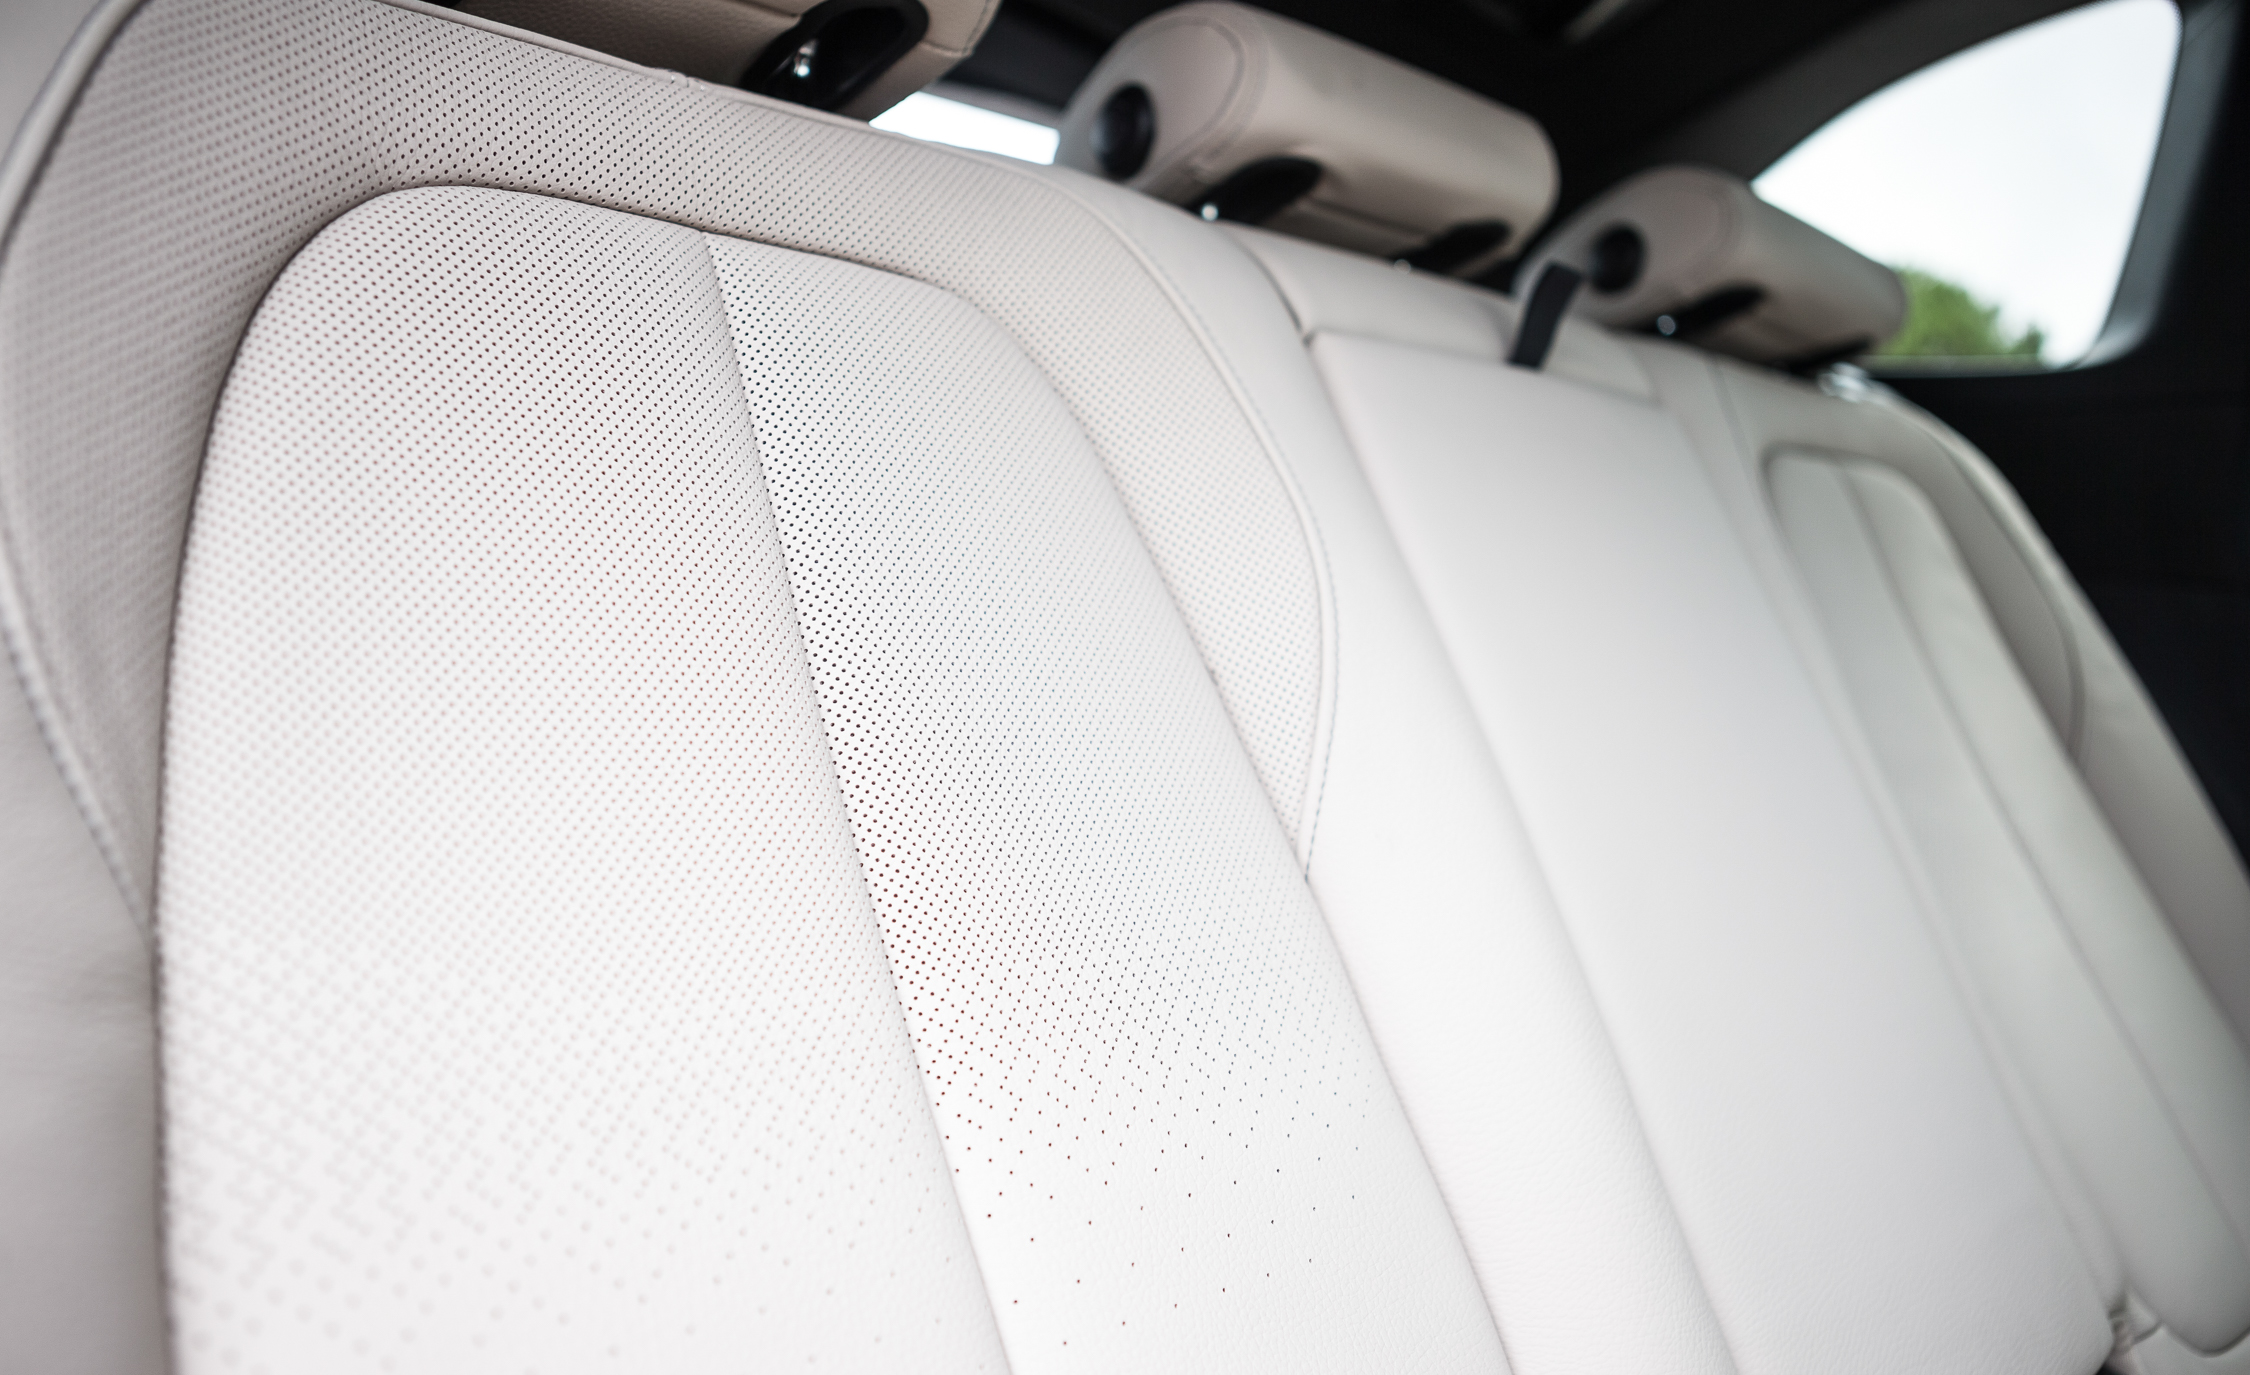 2016 BMW X1 Interior Seats Rear Leather Details (Photo 20 of 36)